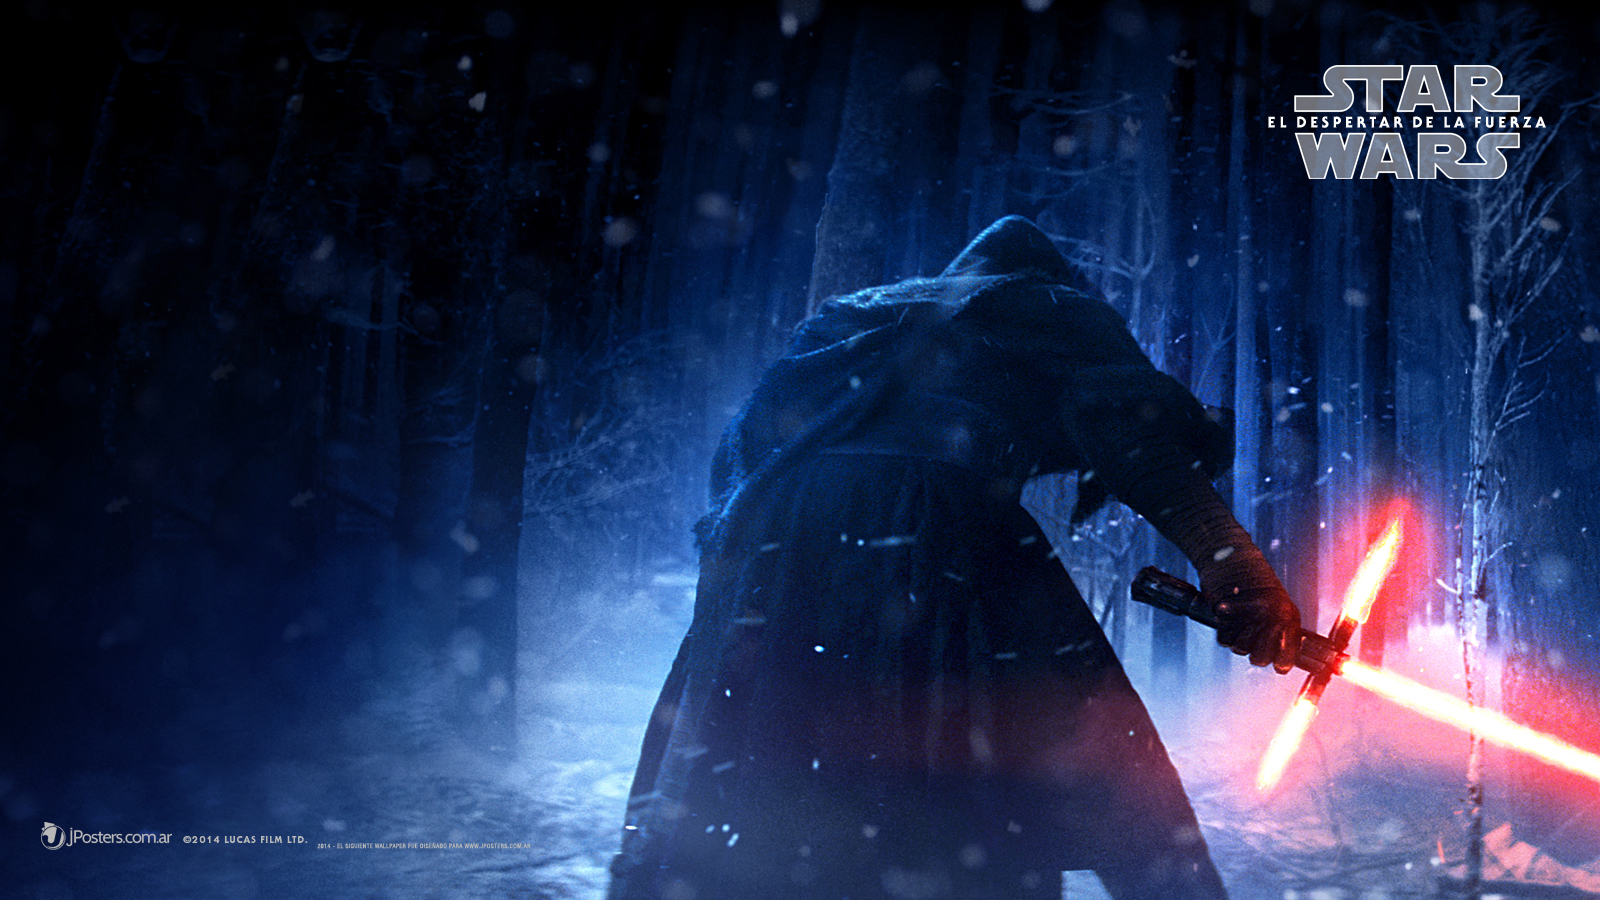 Free Download Star Wars 7 Wallpaper High Definition Movies Wallpaper 1600x900 For Your Desktop Mobile Tablet Explore 50 High Definition Star Wars Wallpaper Star Wars 1080p Wallpaper Sith Wallpaper